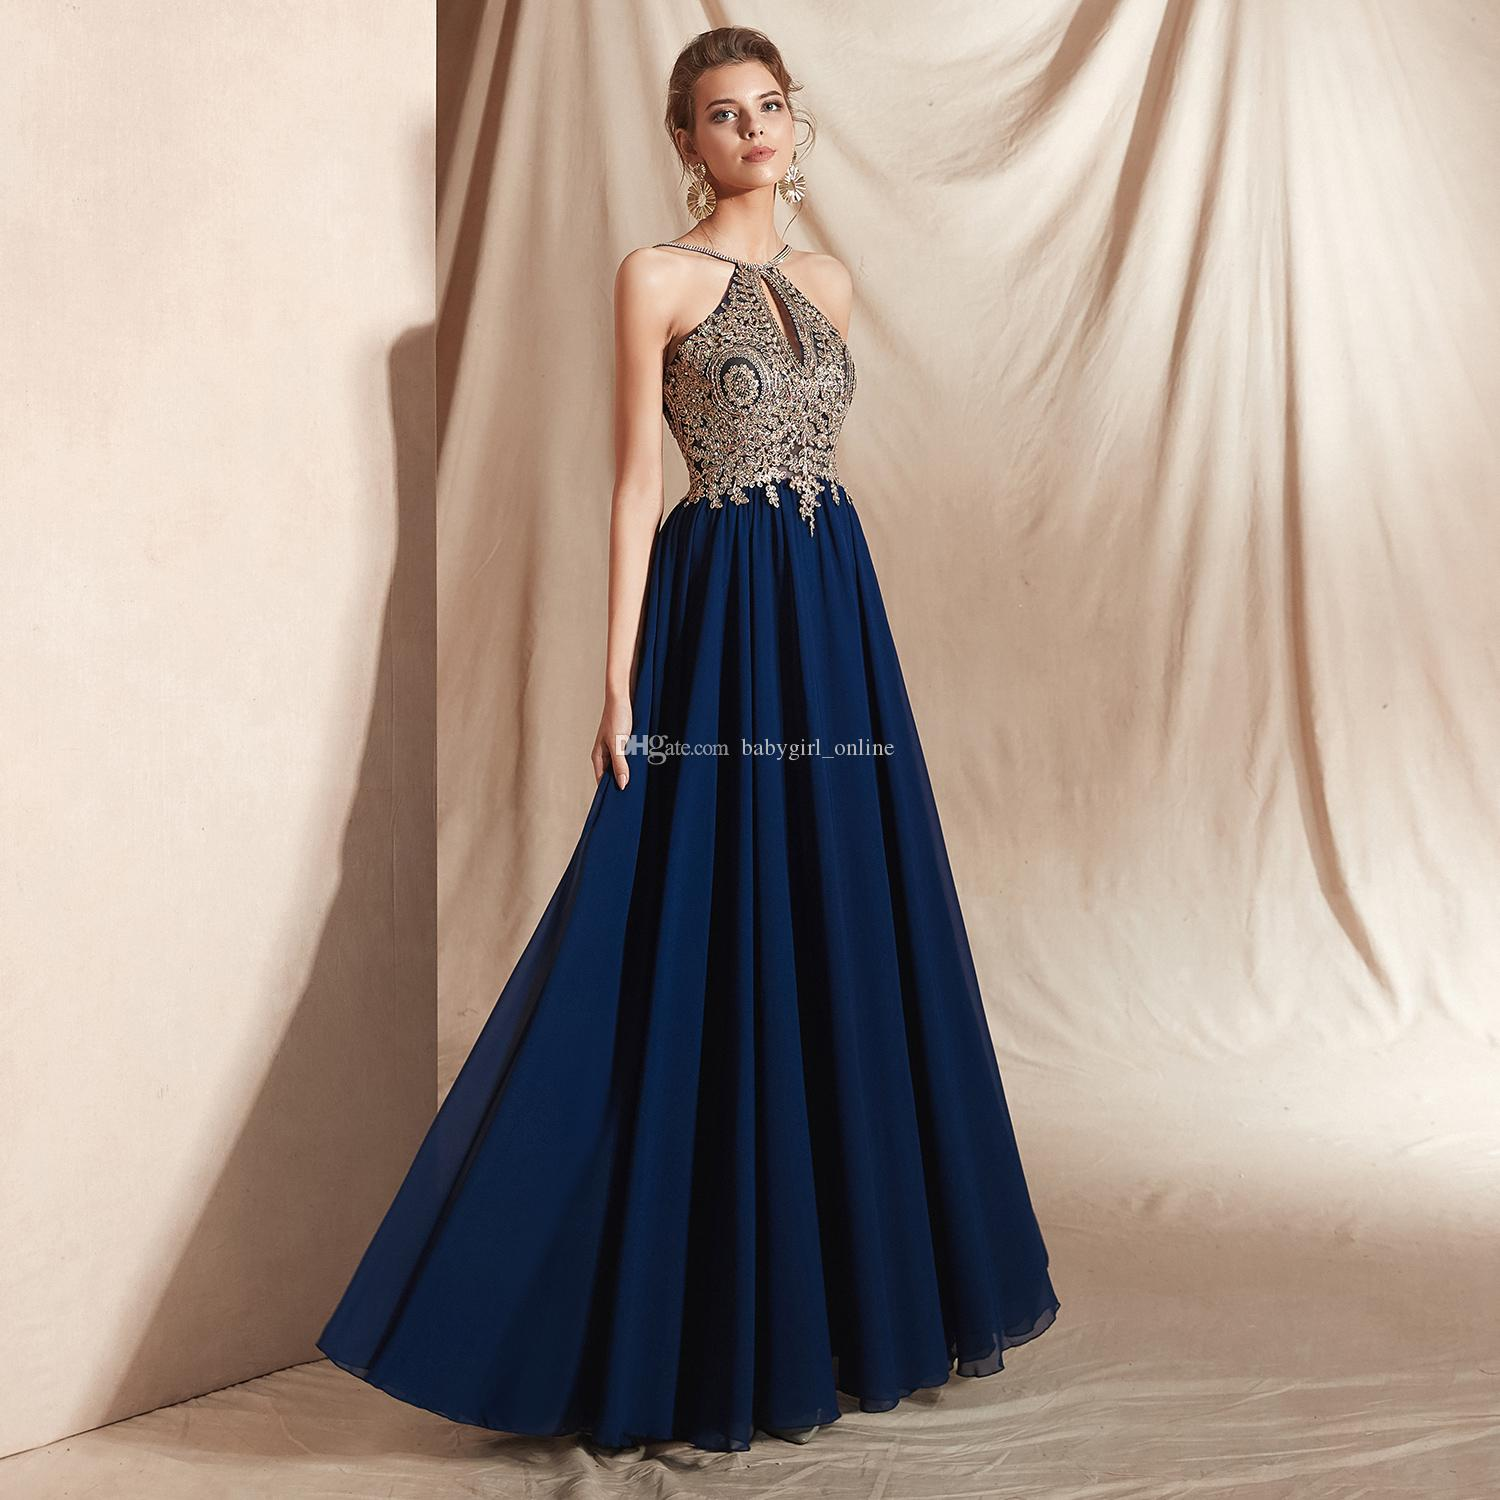 d6748c0bf60 ... Wholesale REAL PICTURE Halter Chiffon Empire Floor Length Exposed  Boning Evening Dress Formal Dress CYH02019E010 Ladies Clothing Uk Long Evening  Dresses ...